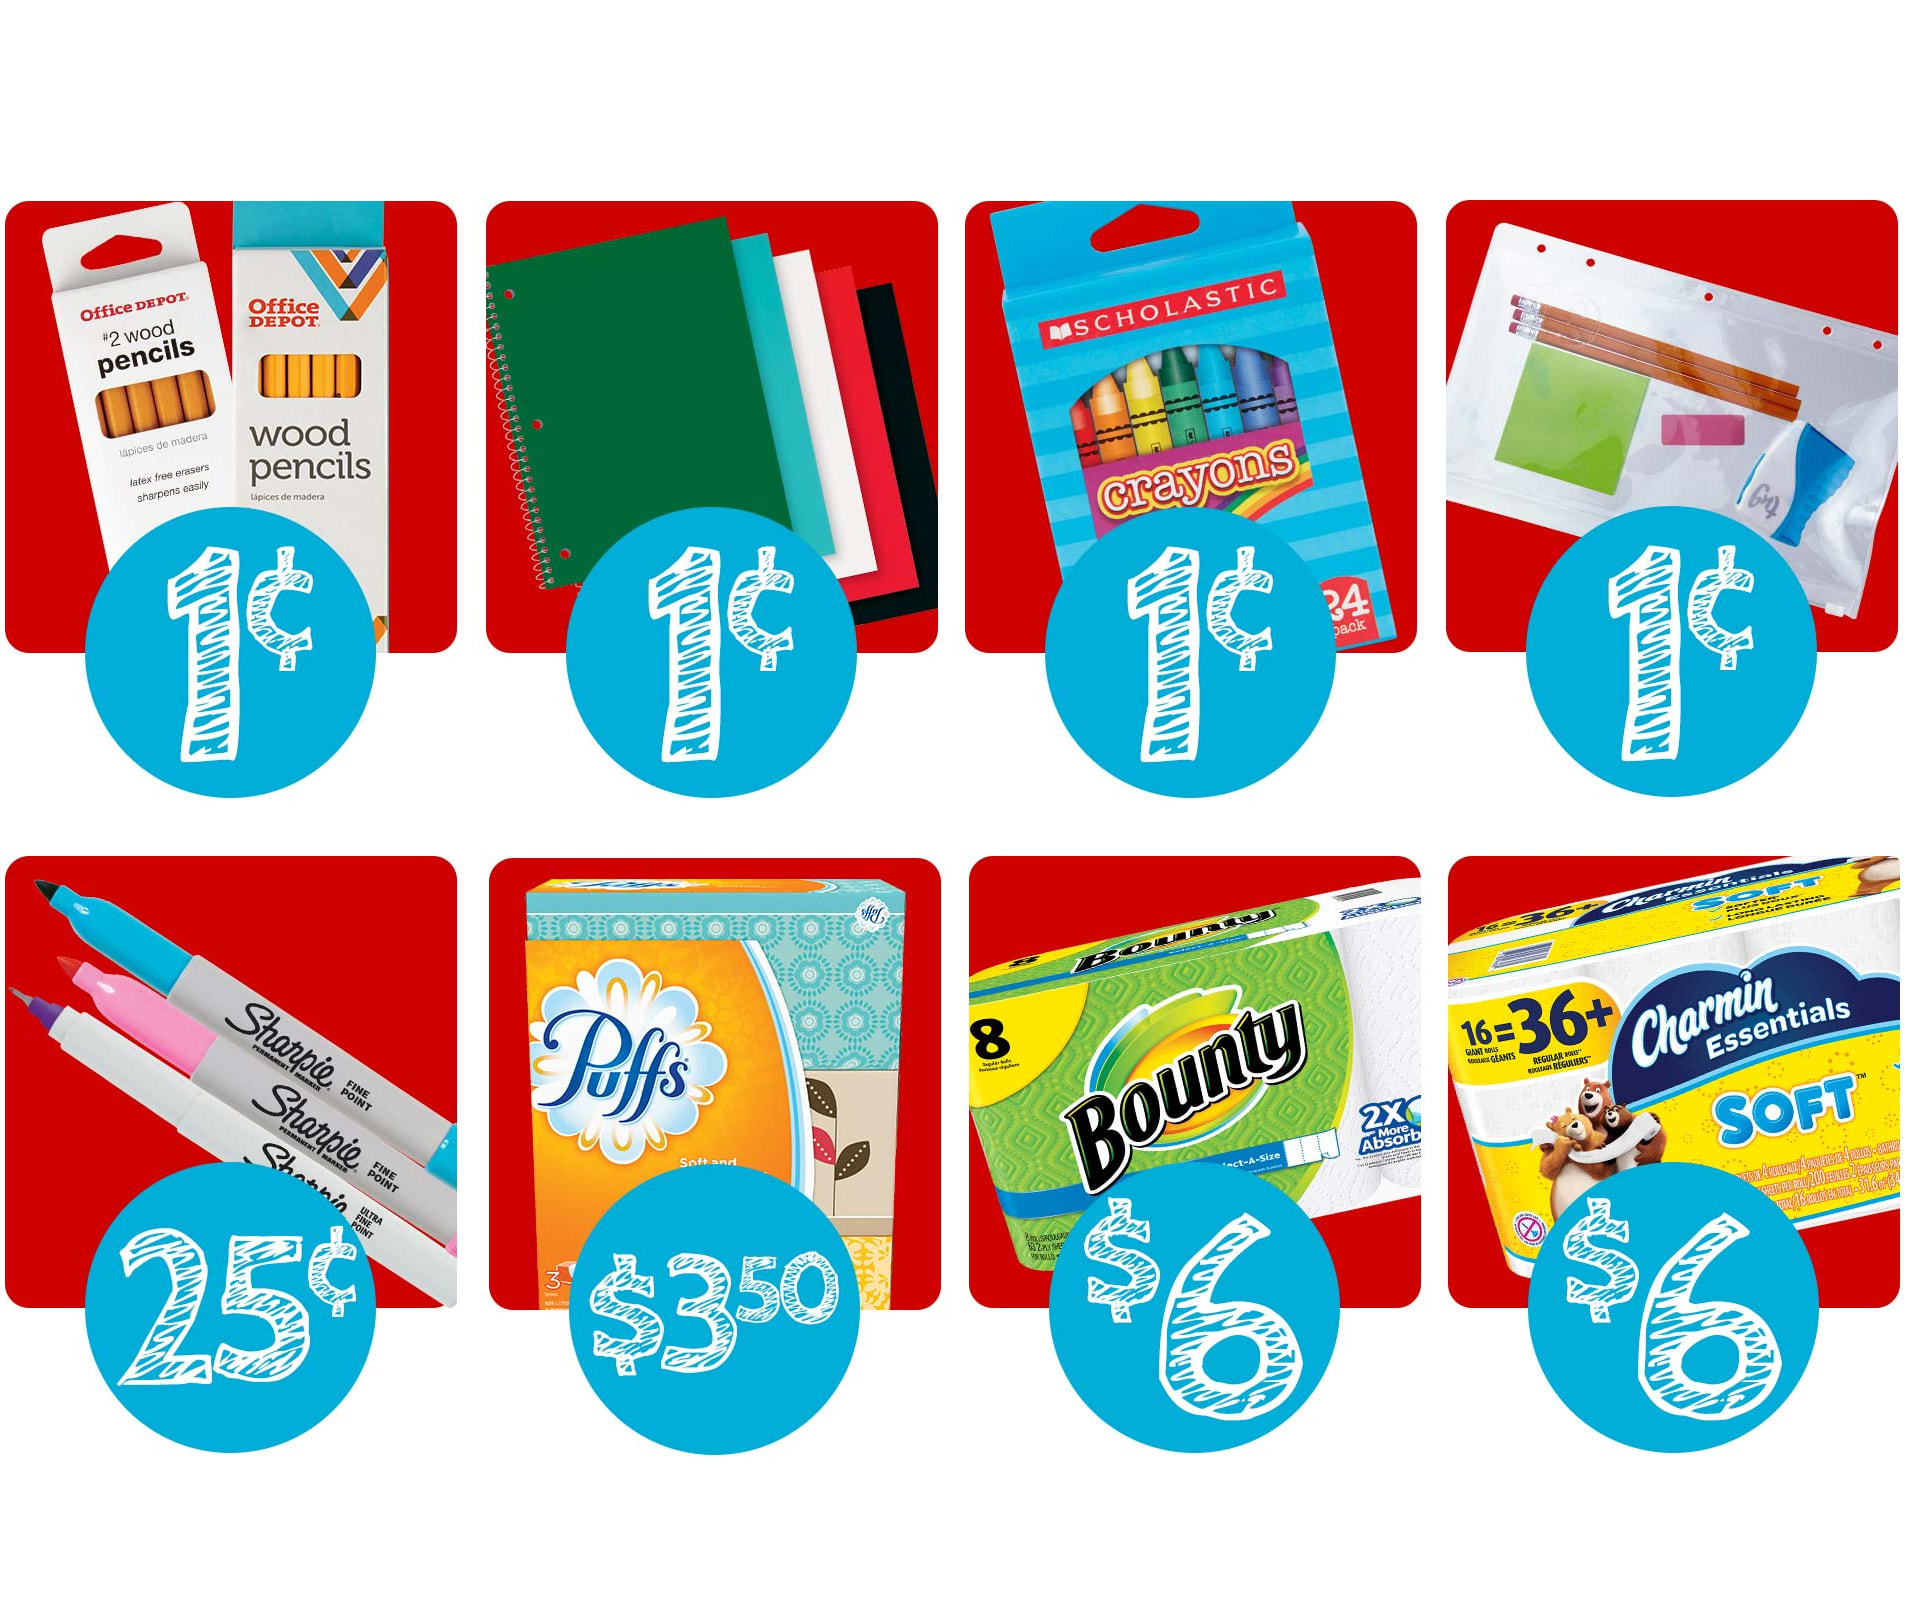 School Supplies at Office Depot and OfficeMax: Deals from 1 cent + in-store only